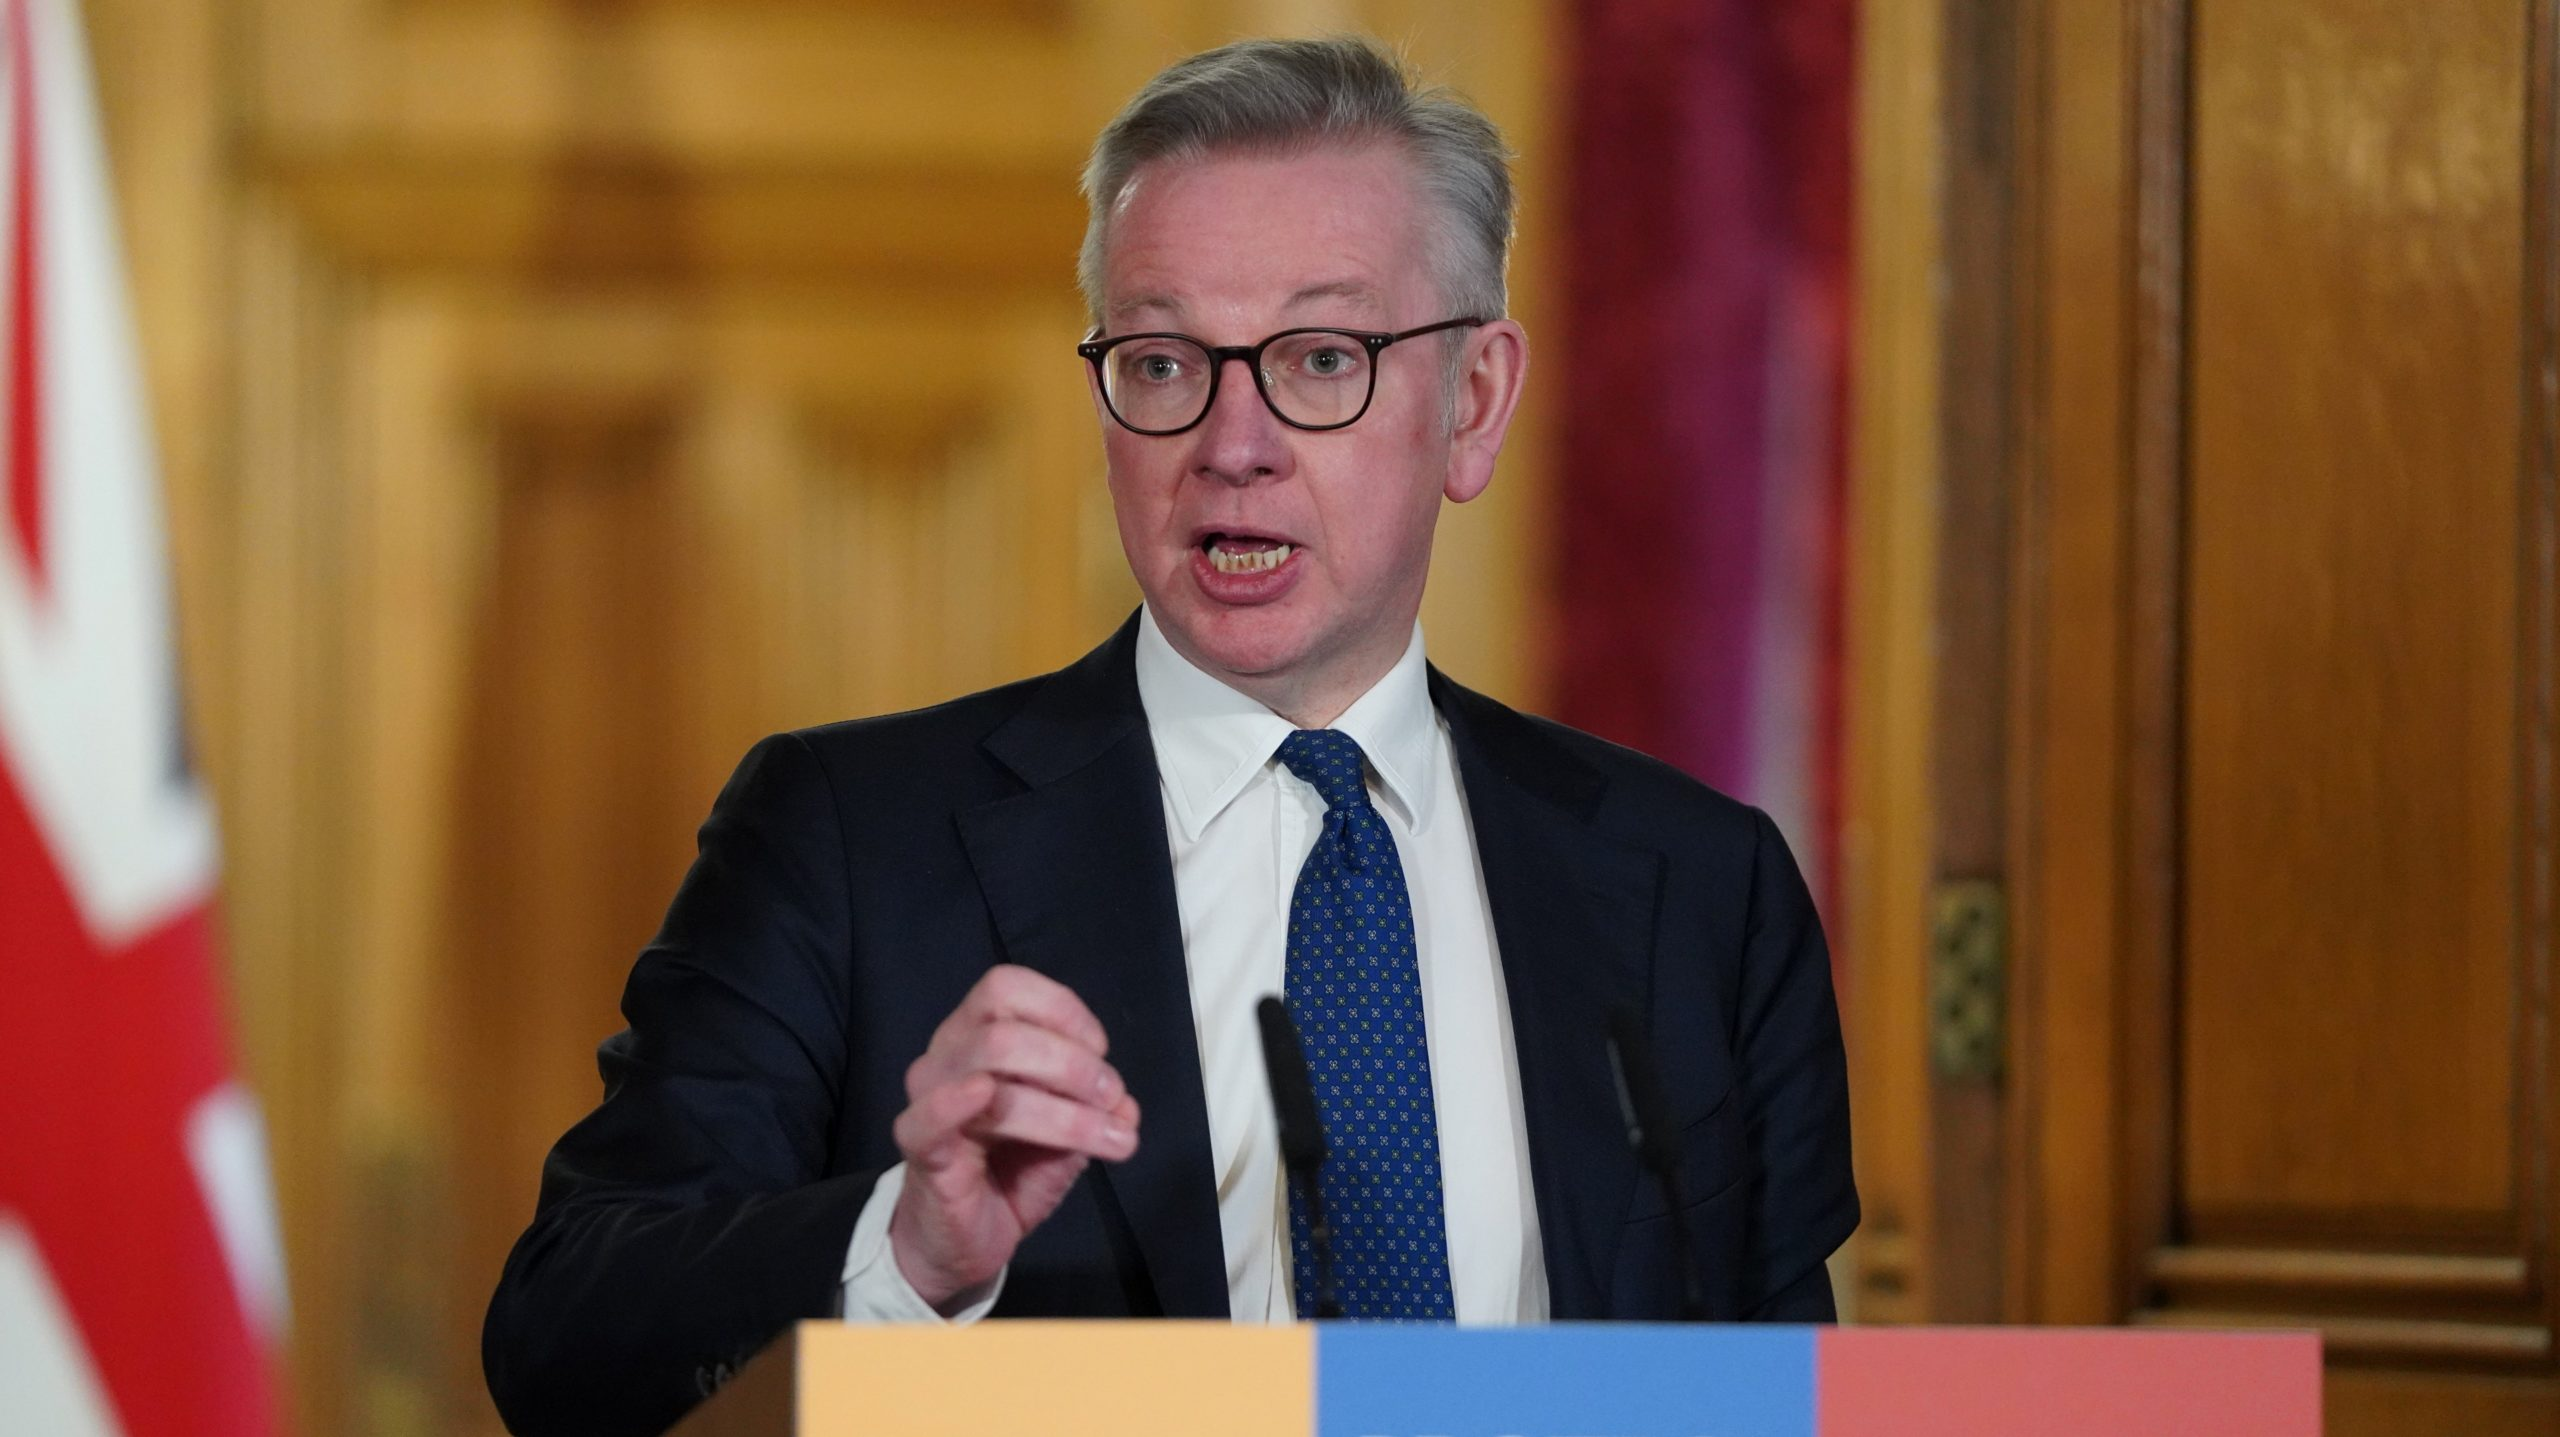 Cabinet Office Minister, Michael Gove